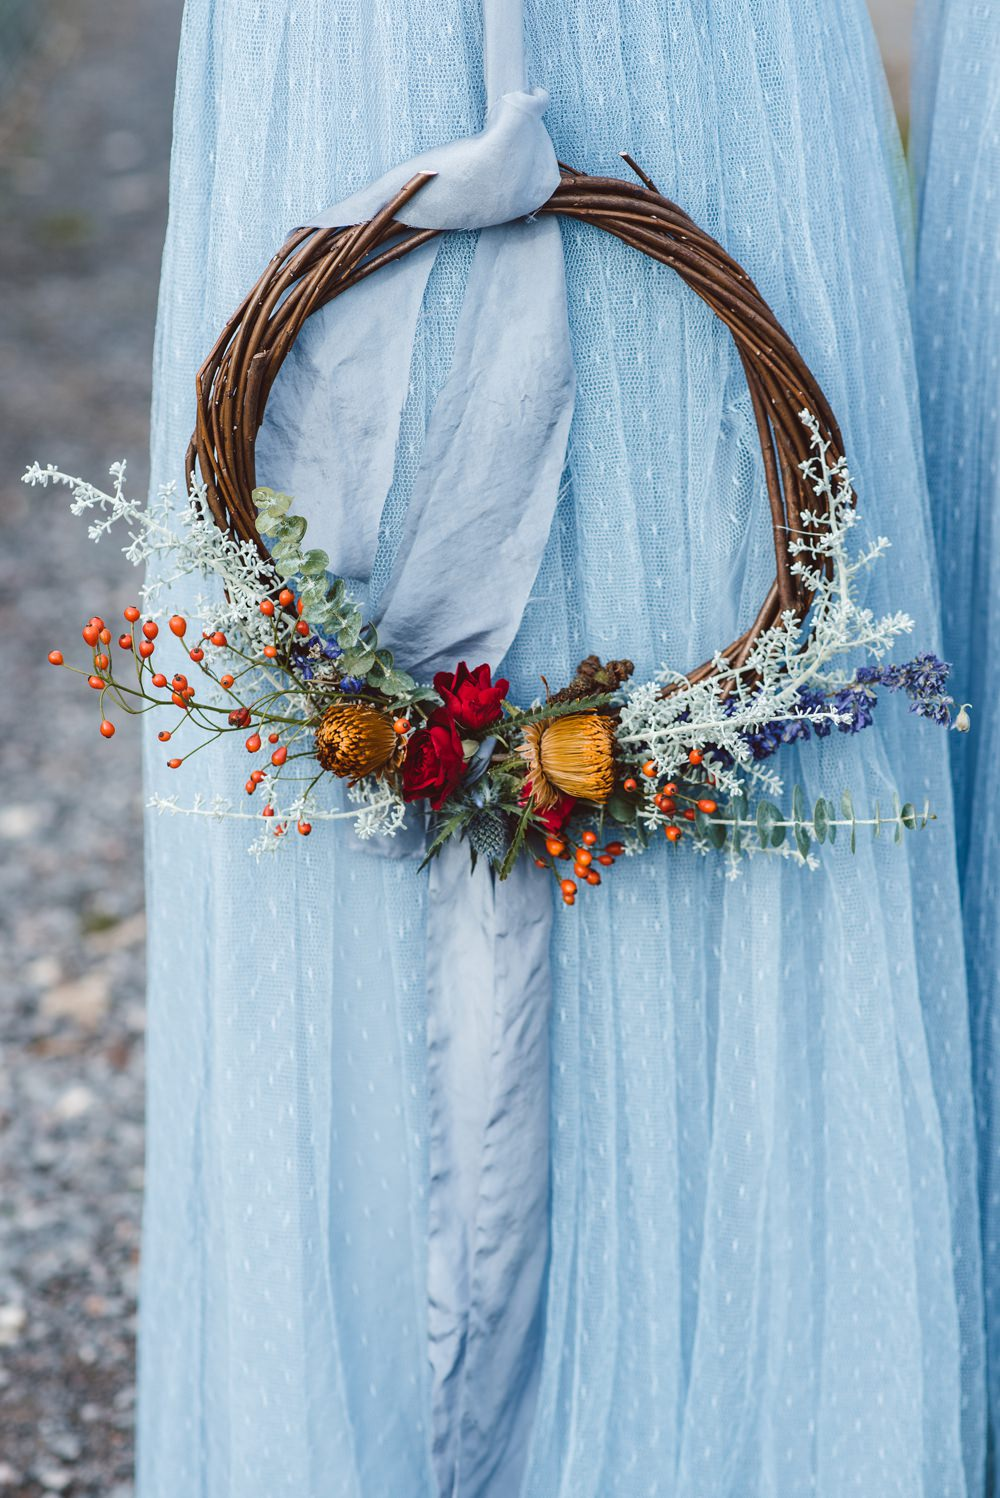 Willow Hoop Flowers Bouquet Bridesmaids Rustic Christmas Wedding Ideas Dhw Photography